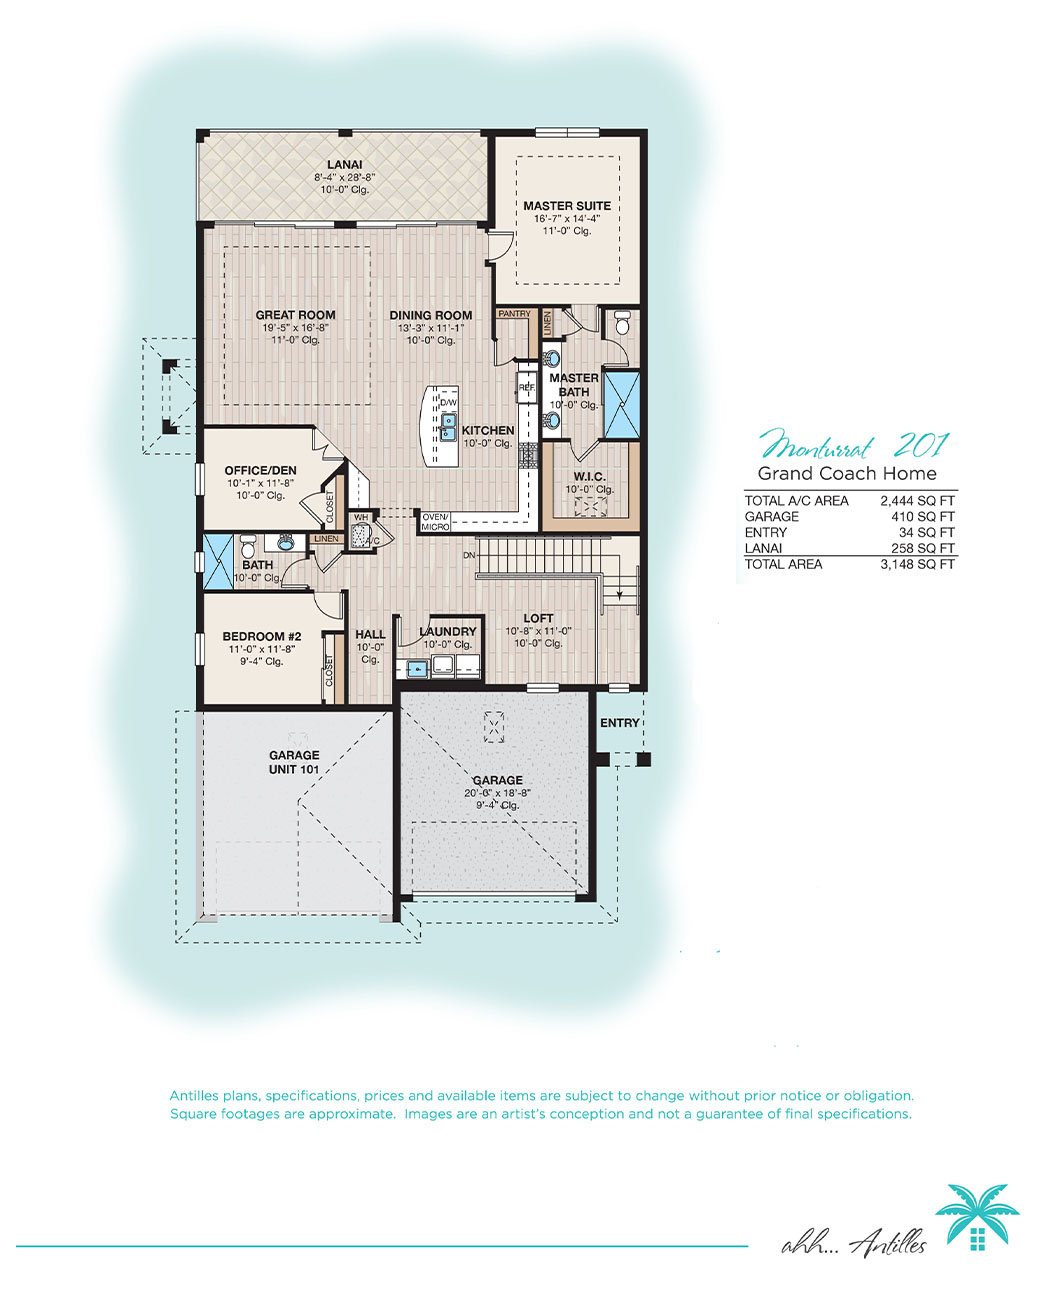 Grand Coach Homes Montserrat 201   Antilles of Naples, Florida - West Indies Styled Residential Resort